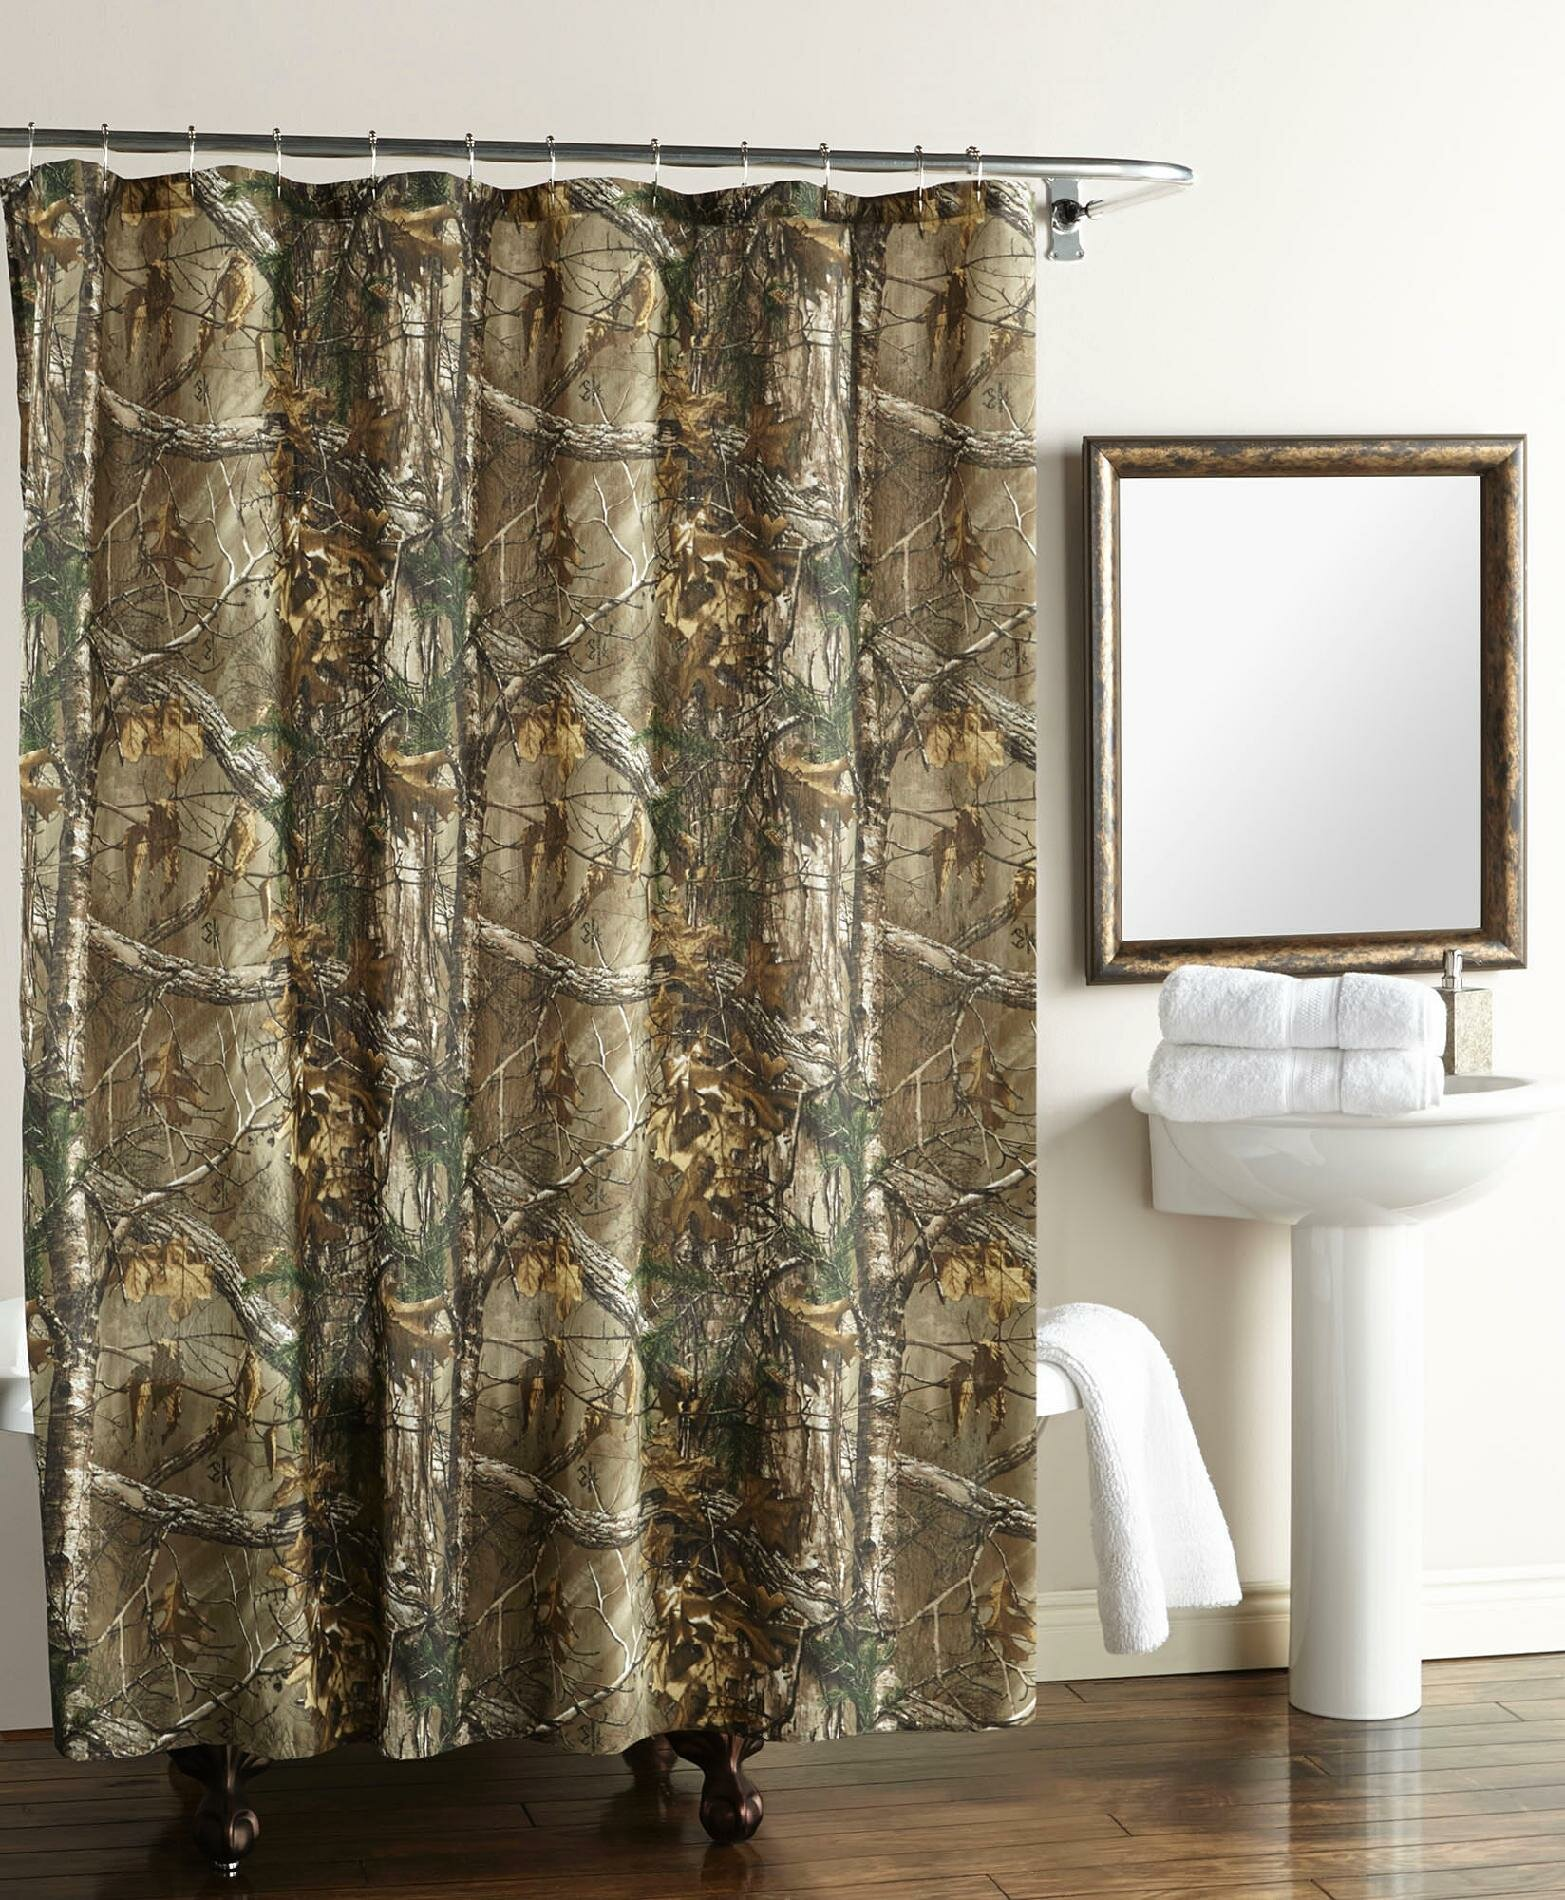 Walmart Bird Shower Curtain | Cheap Fabric Shower Curtain | Walmart Shower Curtain